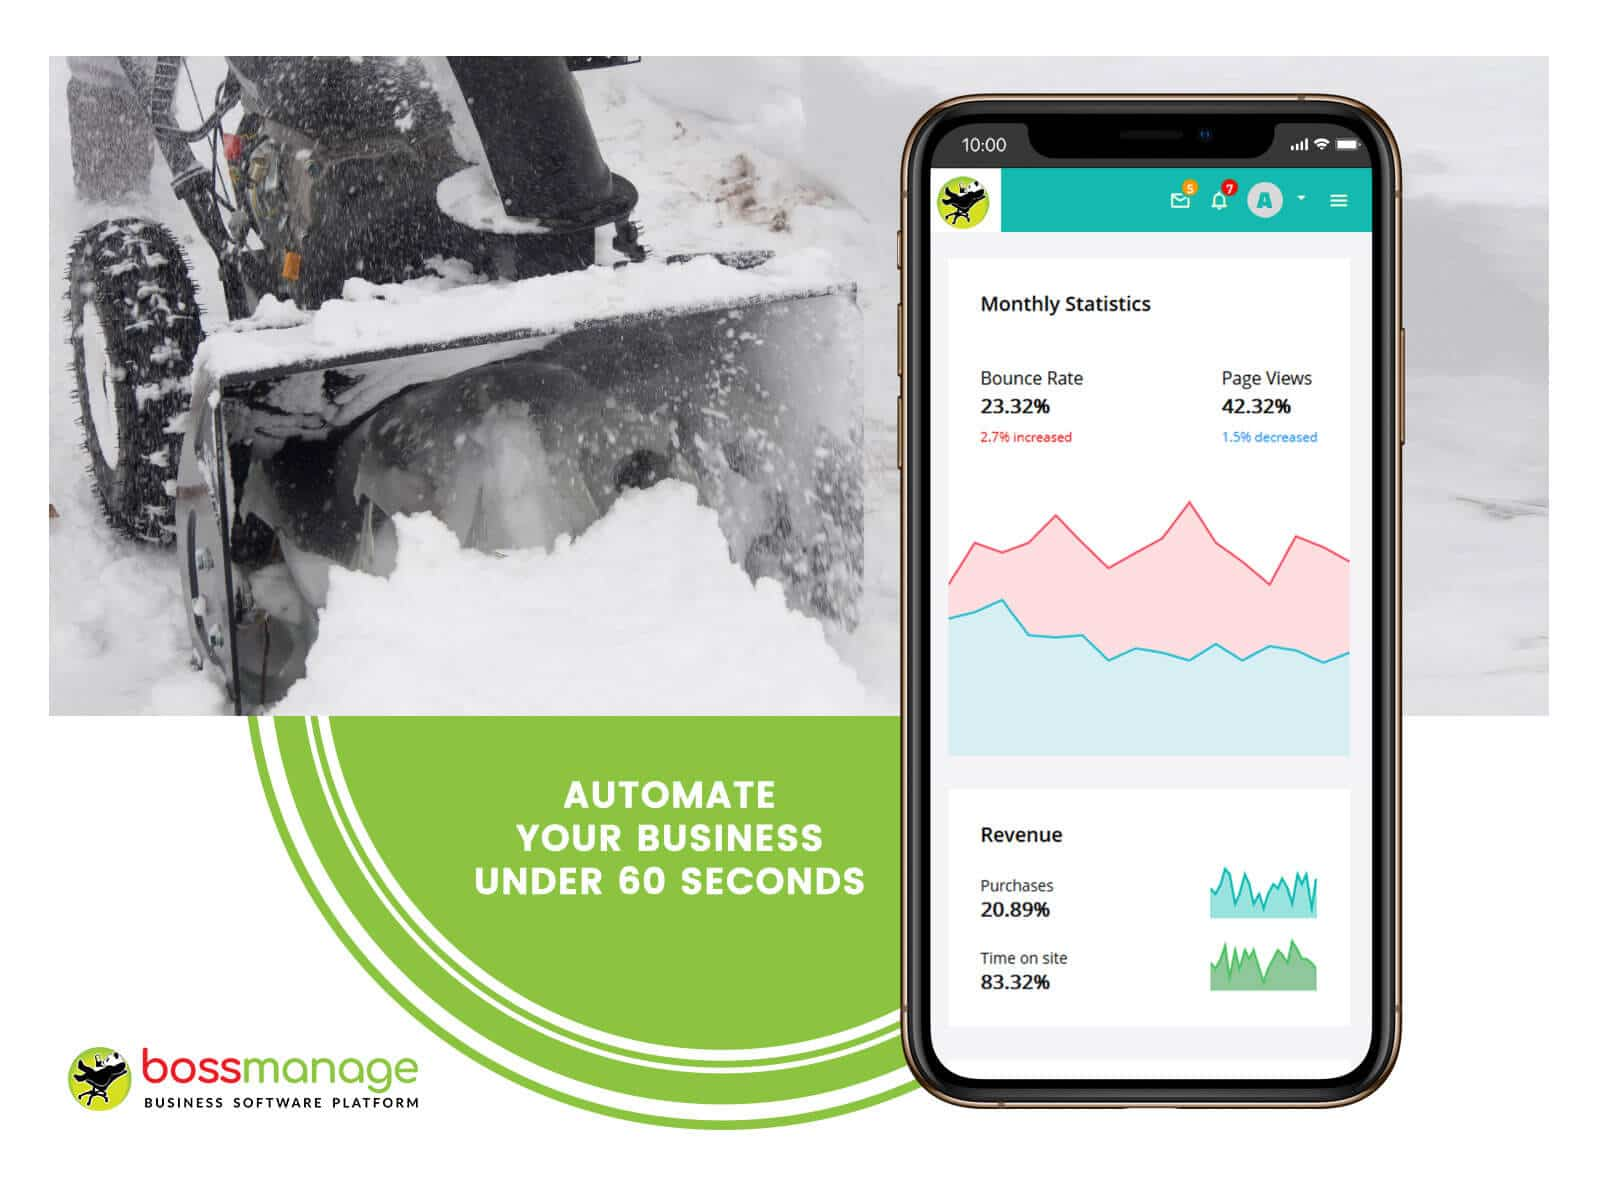 dispatch scheduling software free, direct connect field services reviews, Snow Removal management system, BossManage